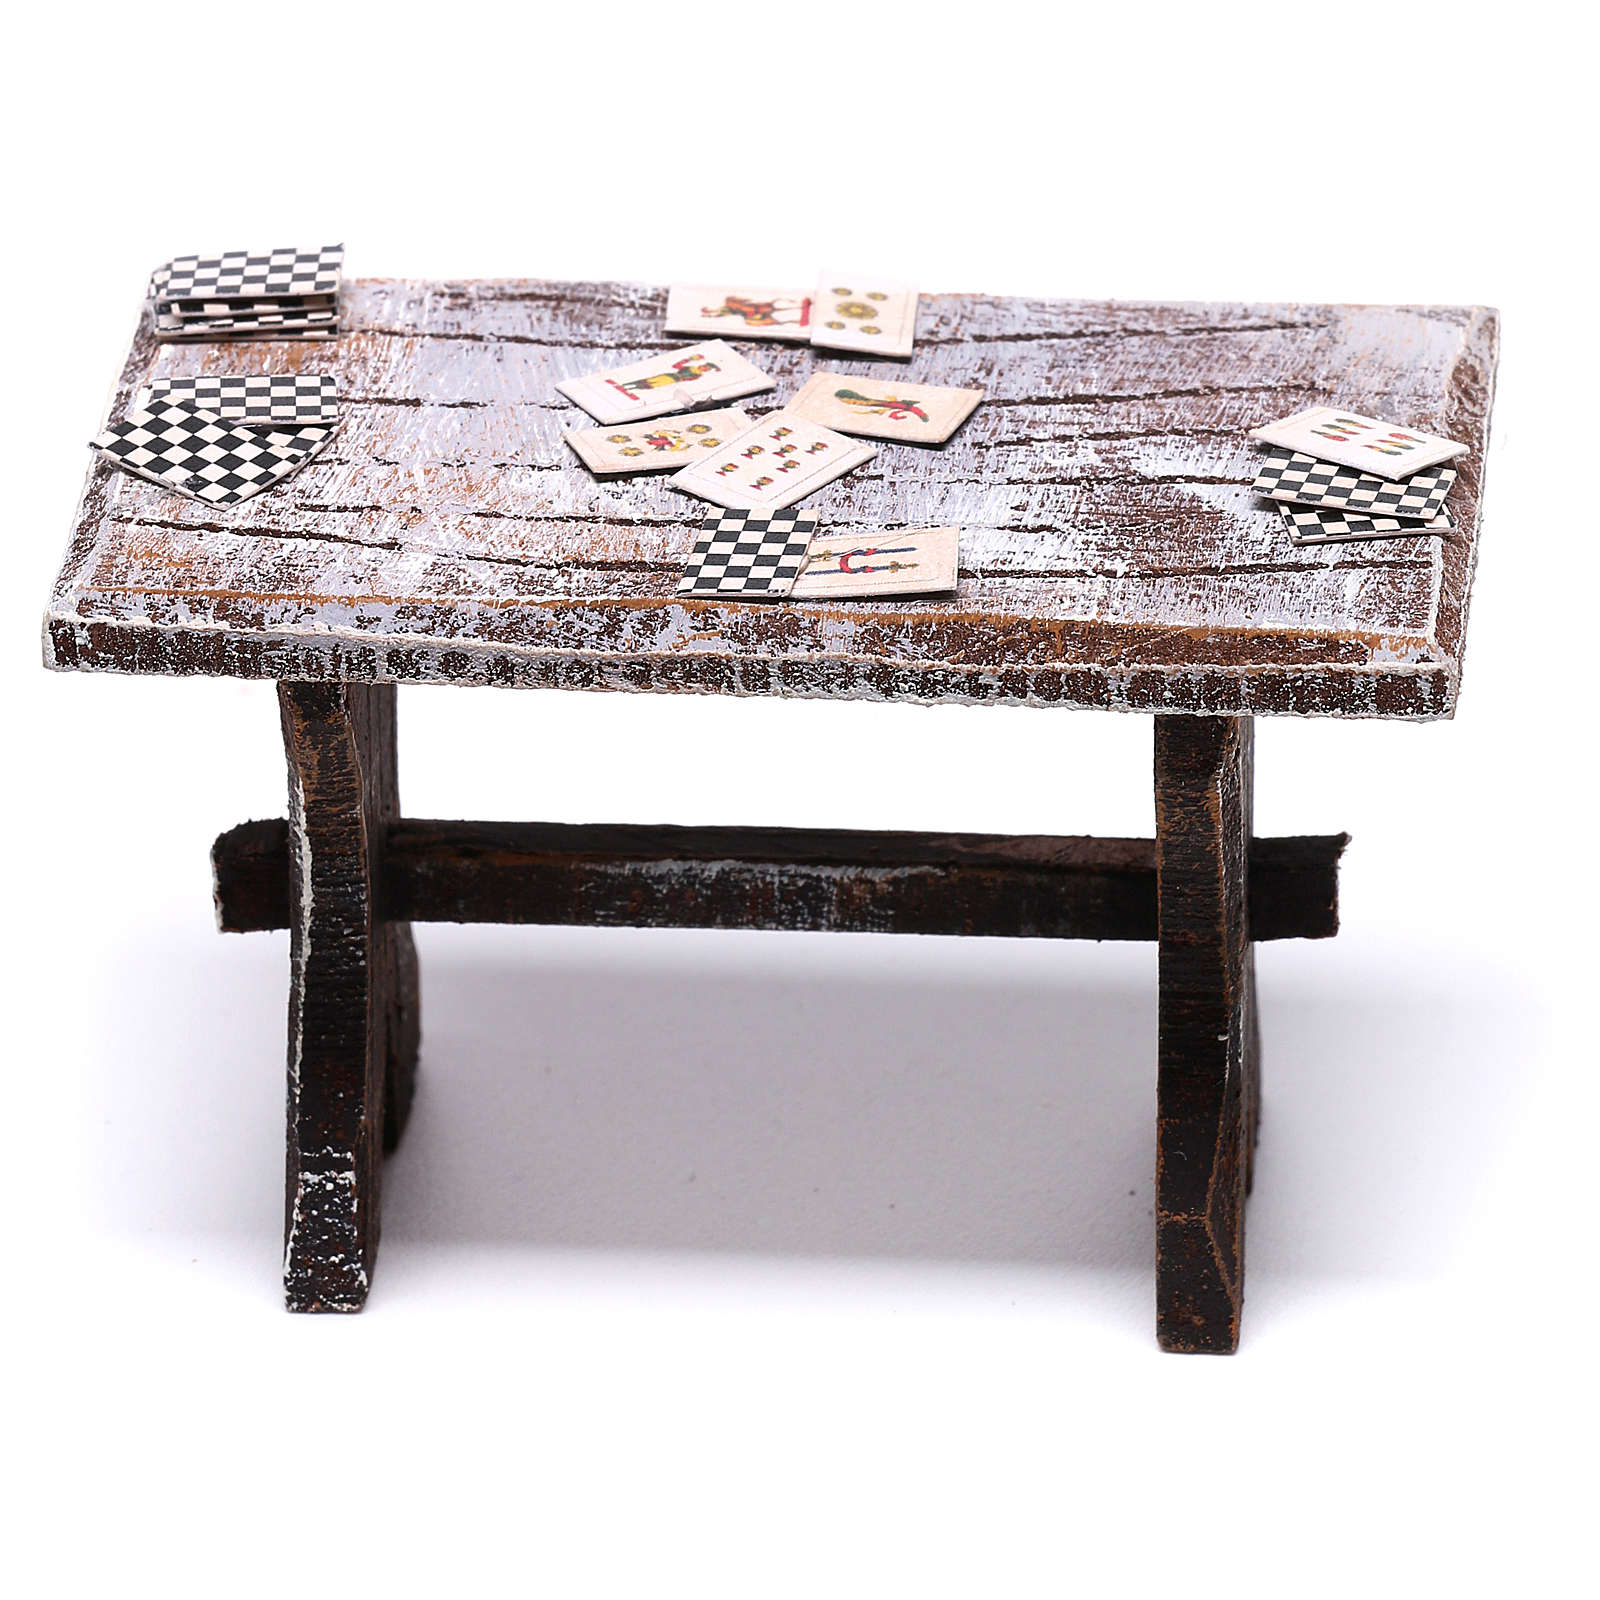 Table with cards and stools of 5x5x5 cm for Nativity scene of 10 cm 4